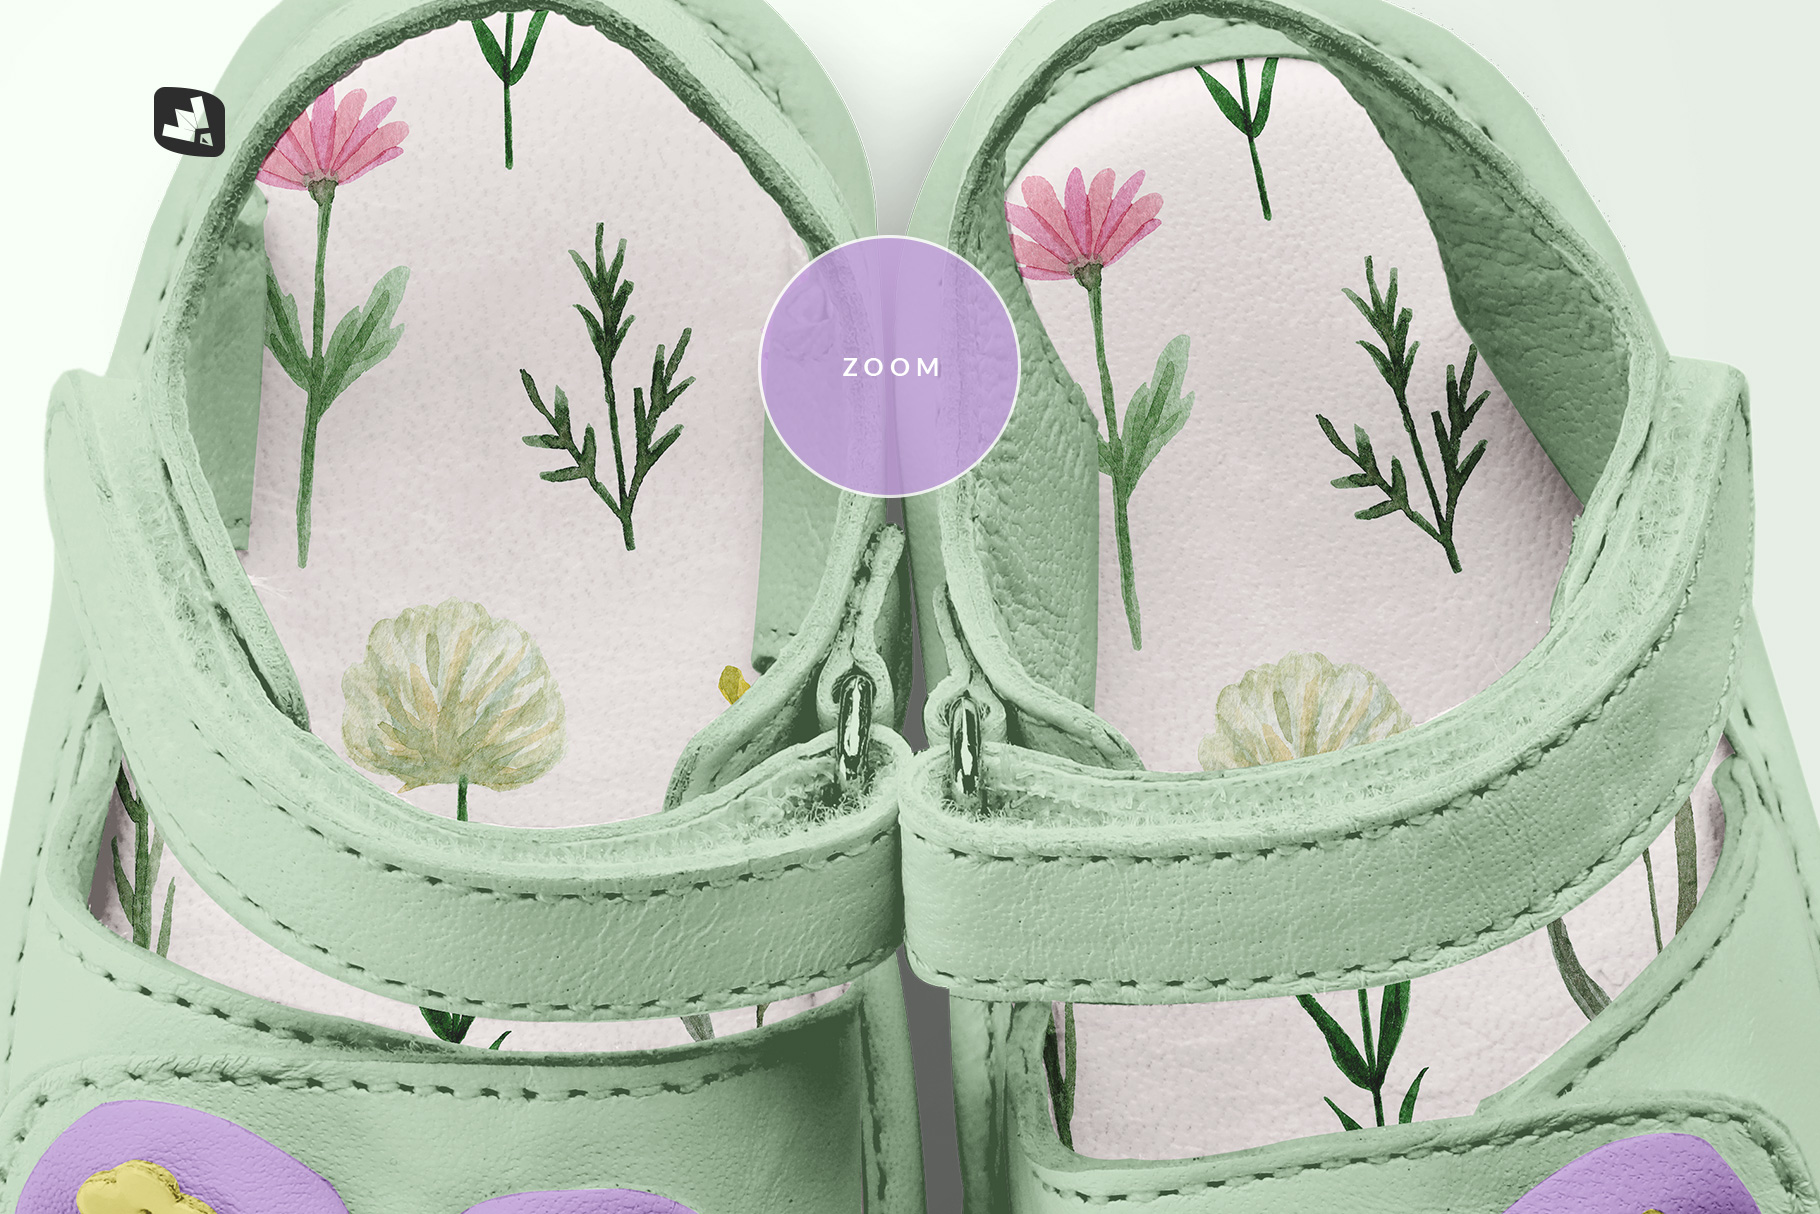 zoomed in image of the topview baby sandals with bow mockup